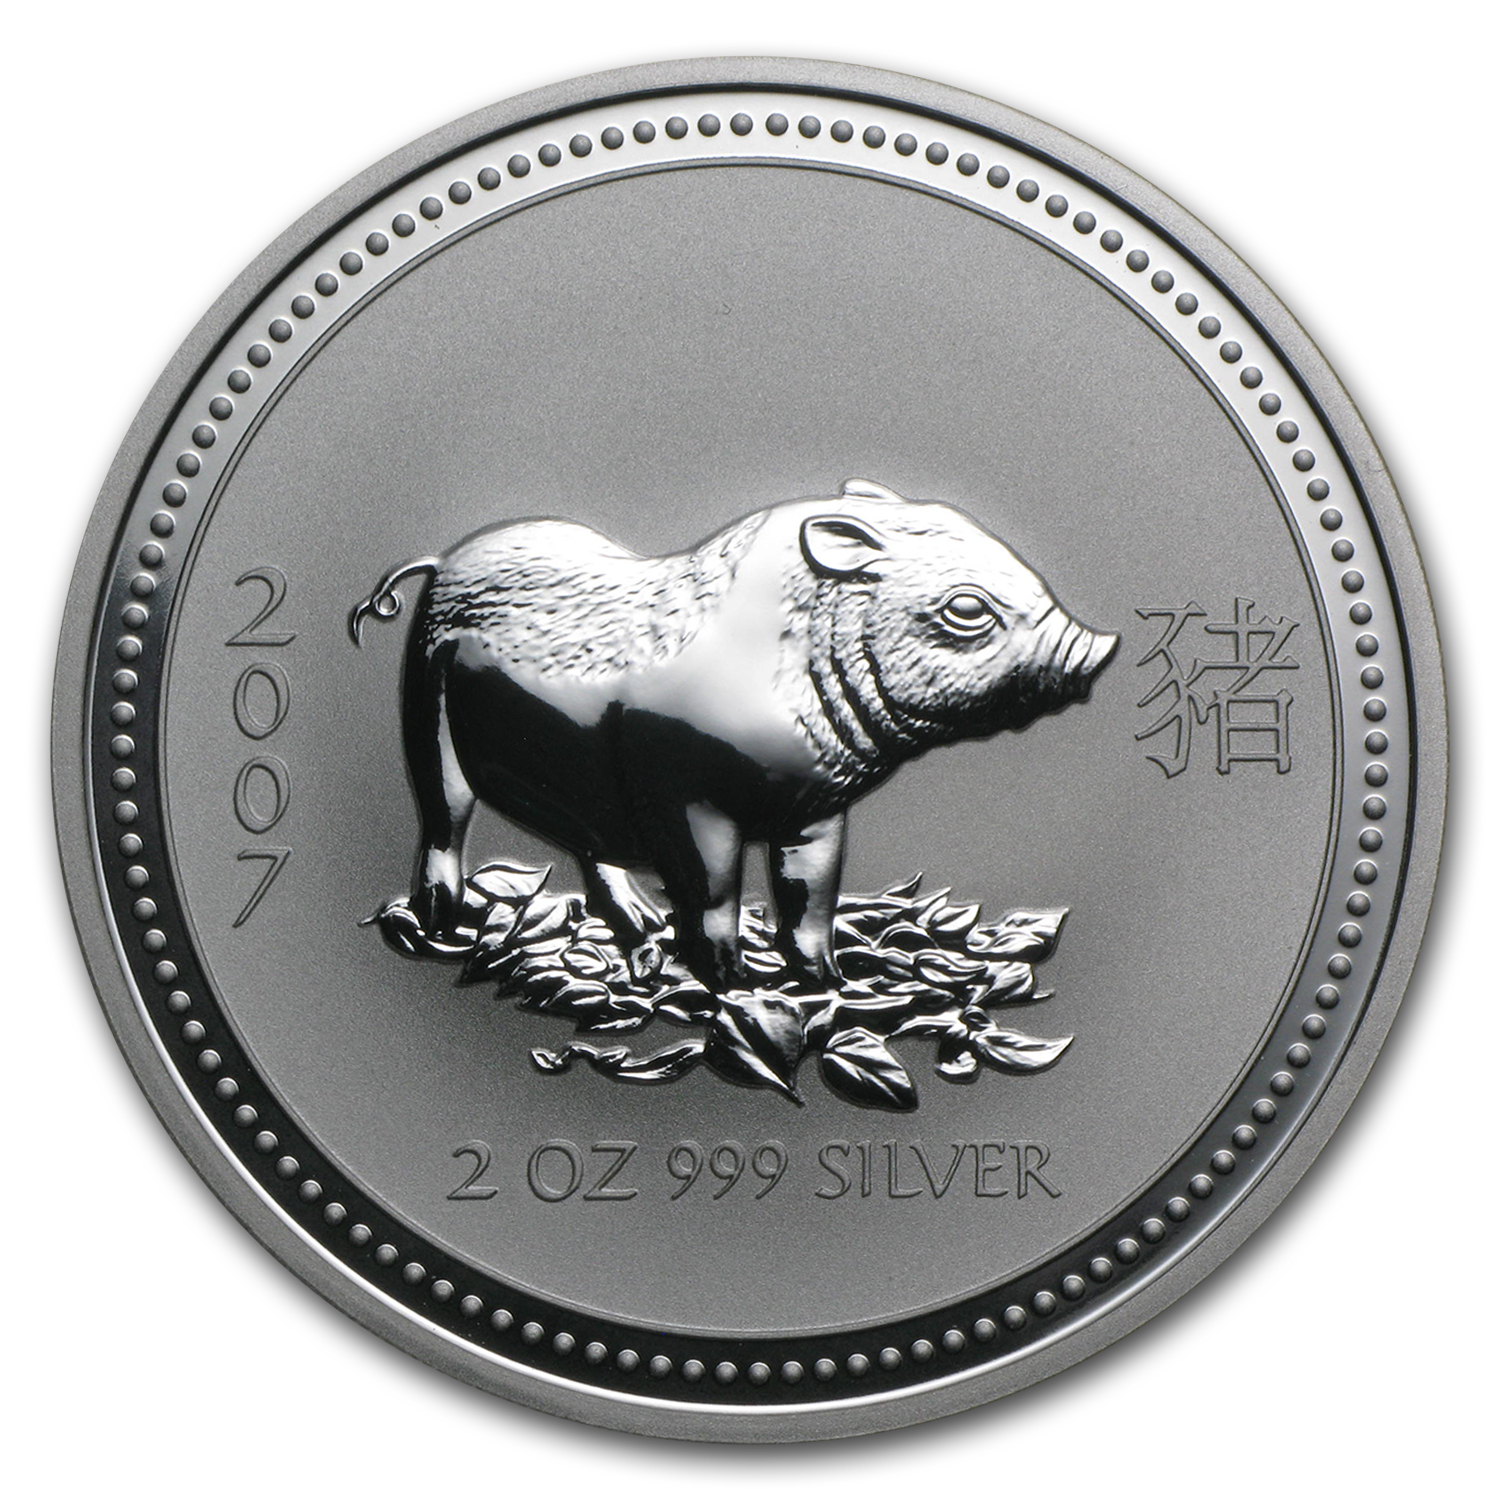 2007 Australia 2 oz Silver Year of the Pig BU